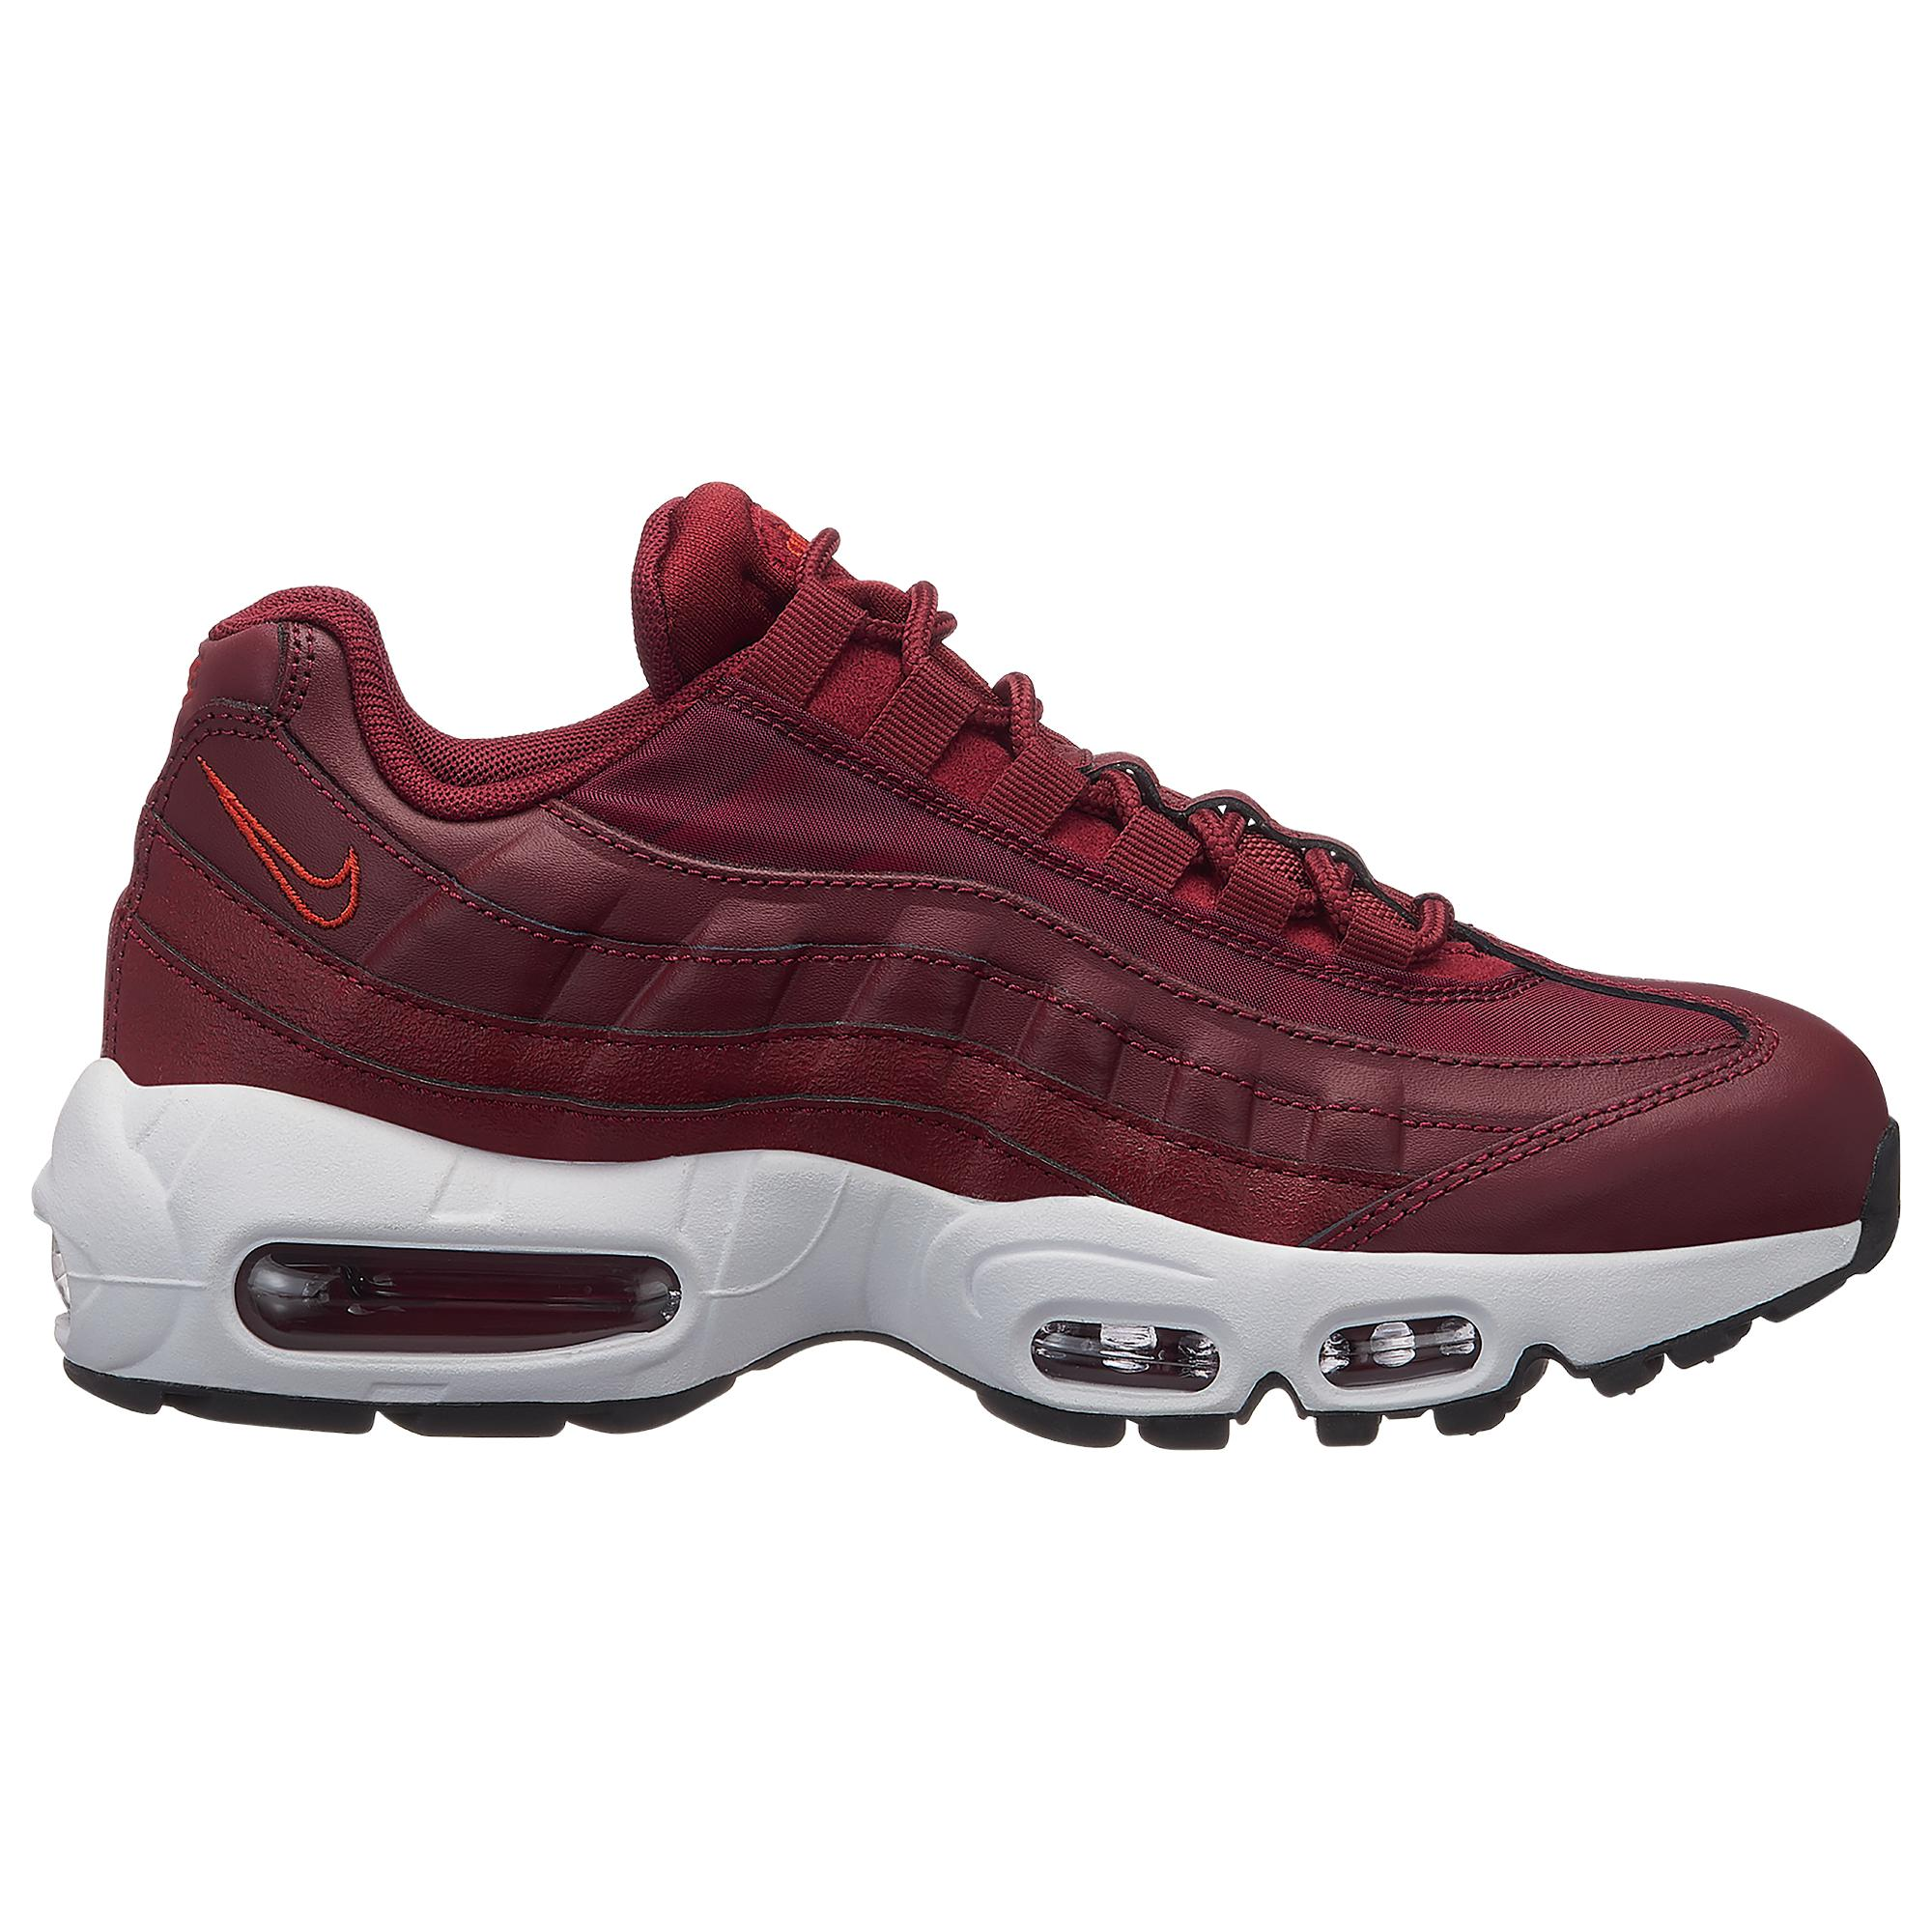 719cf25f93 Nike Air Max 95 in Red - Lyst